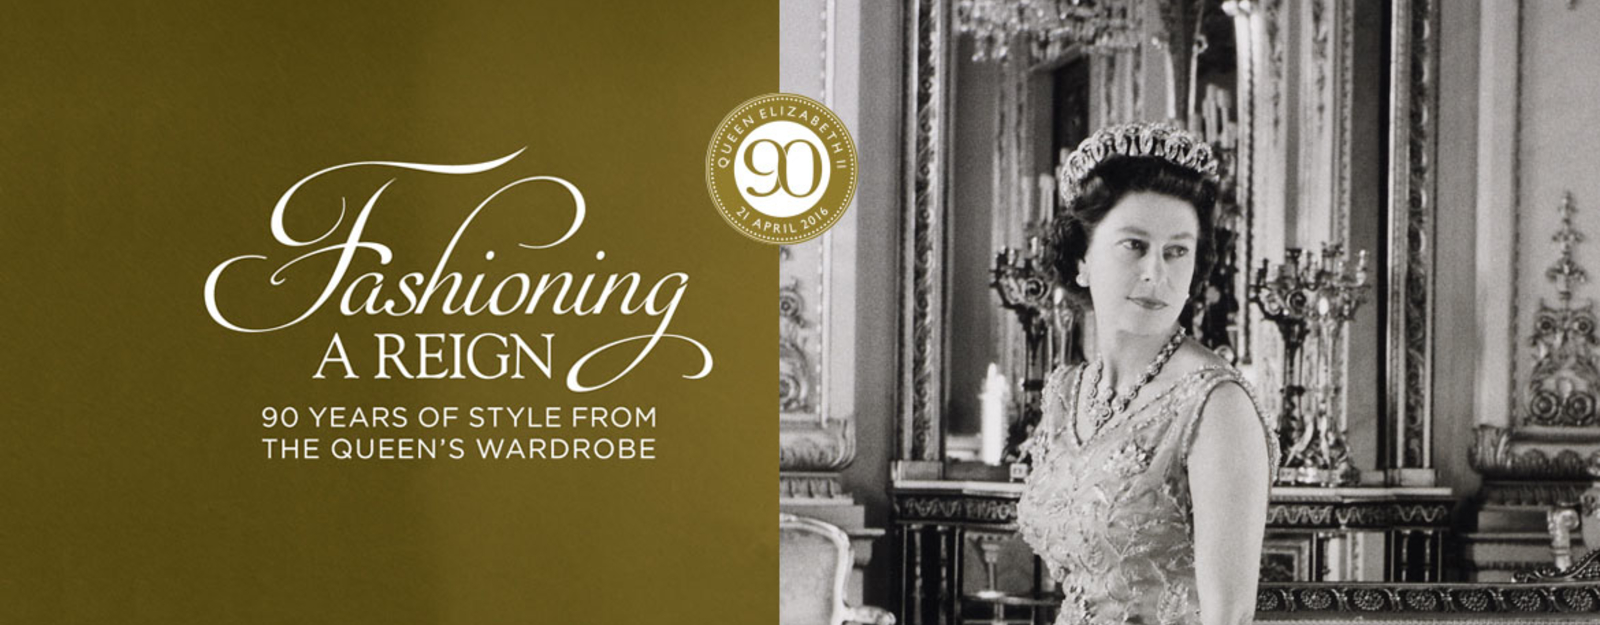 Garderobe Queen Elizabeth Fashioning A Reign 90 Years Of Style From The Queens Wardrobe